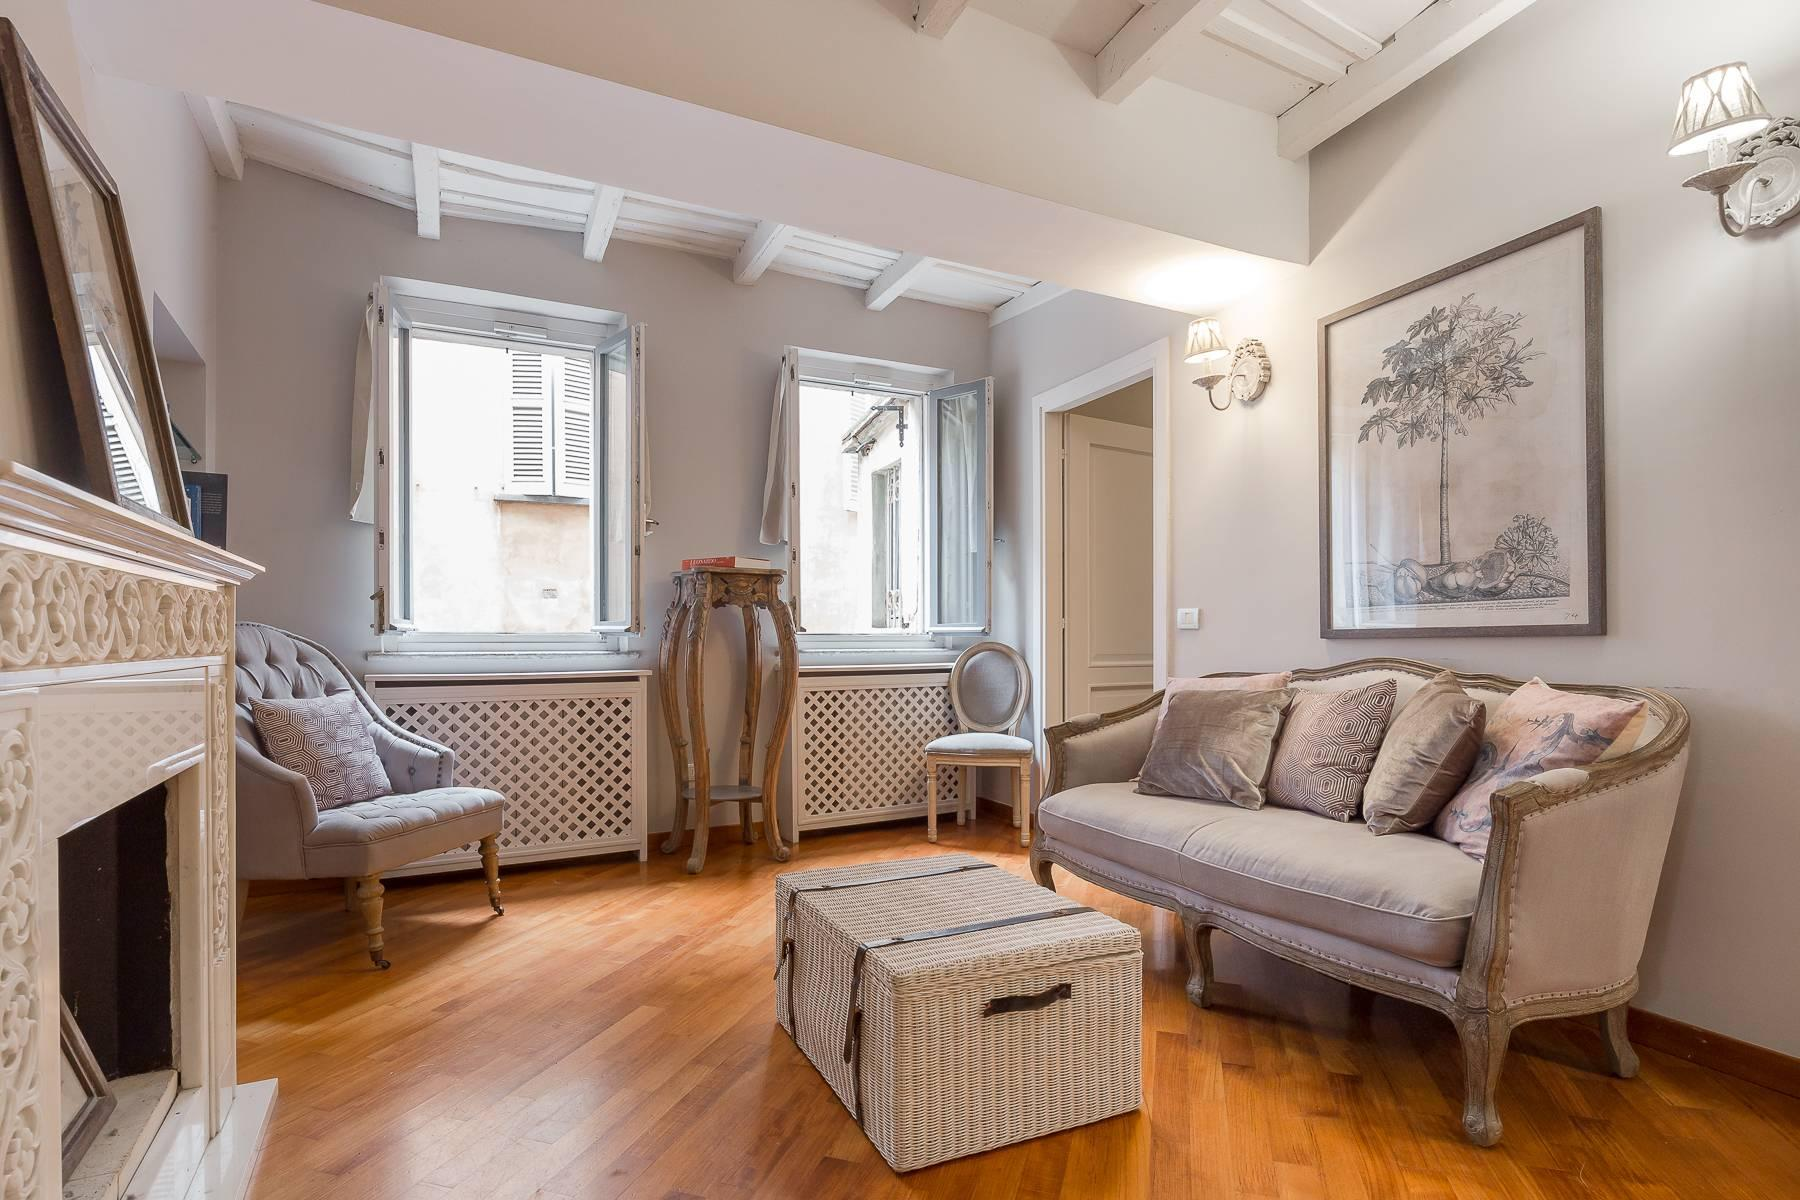 Fully furnished three-room apartment in the heart of Brera - 1